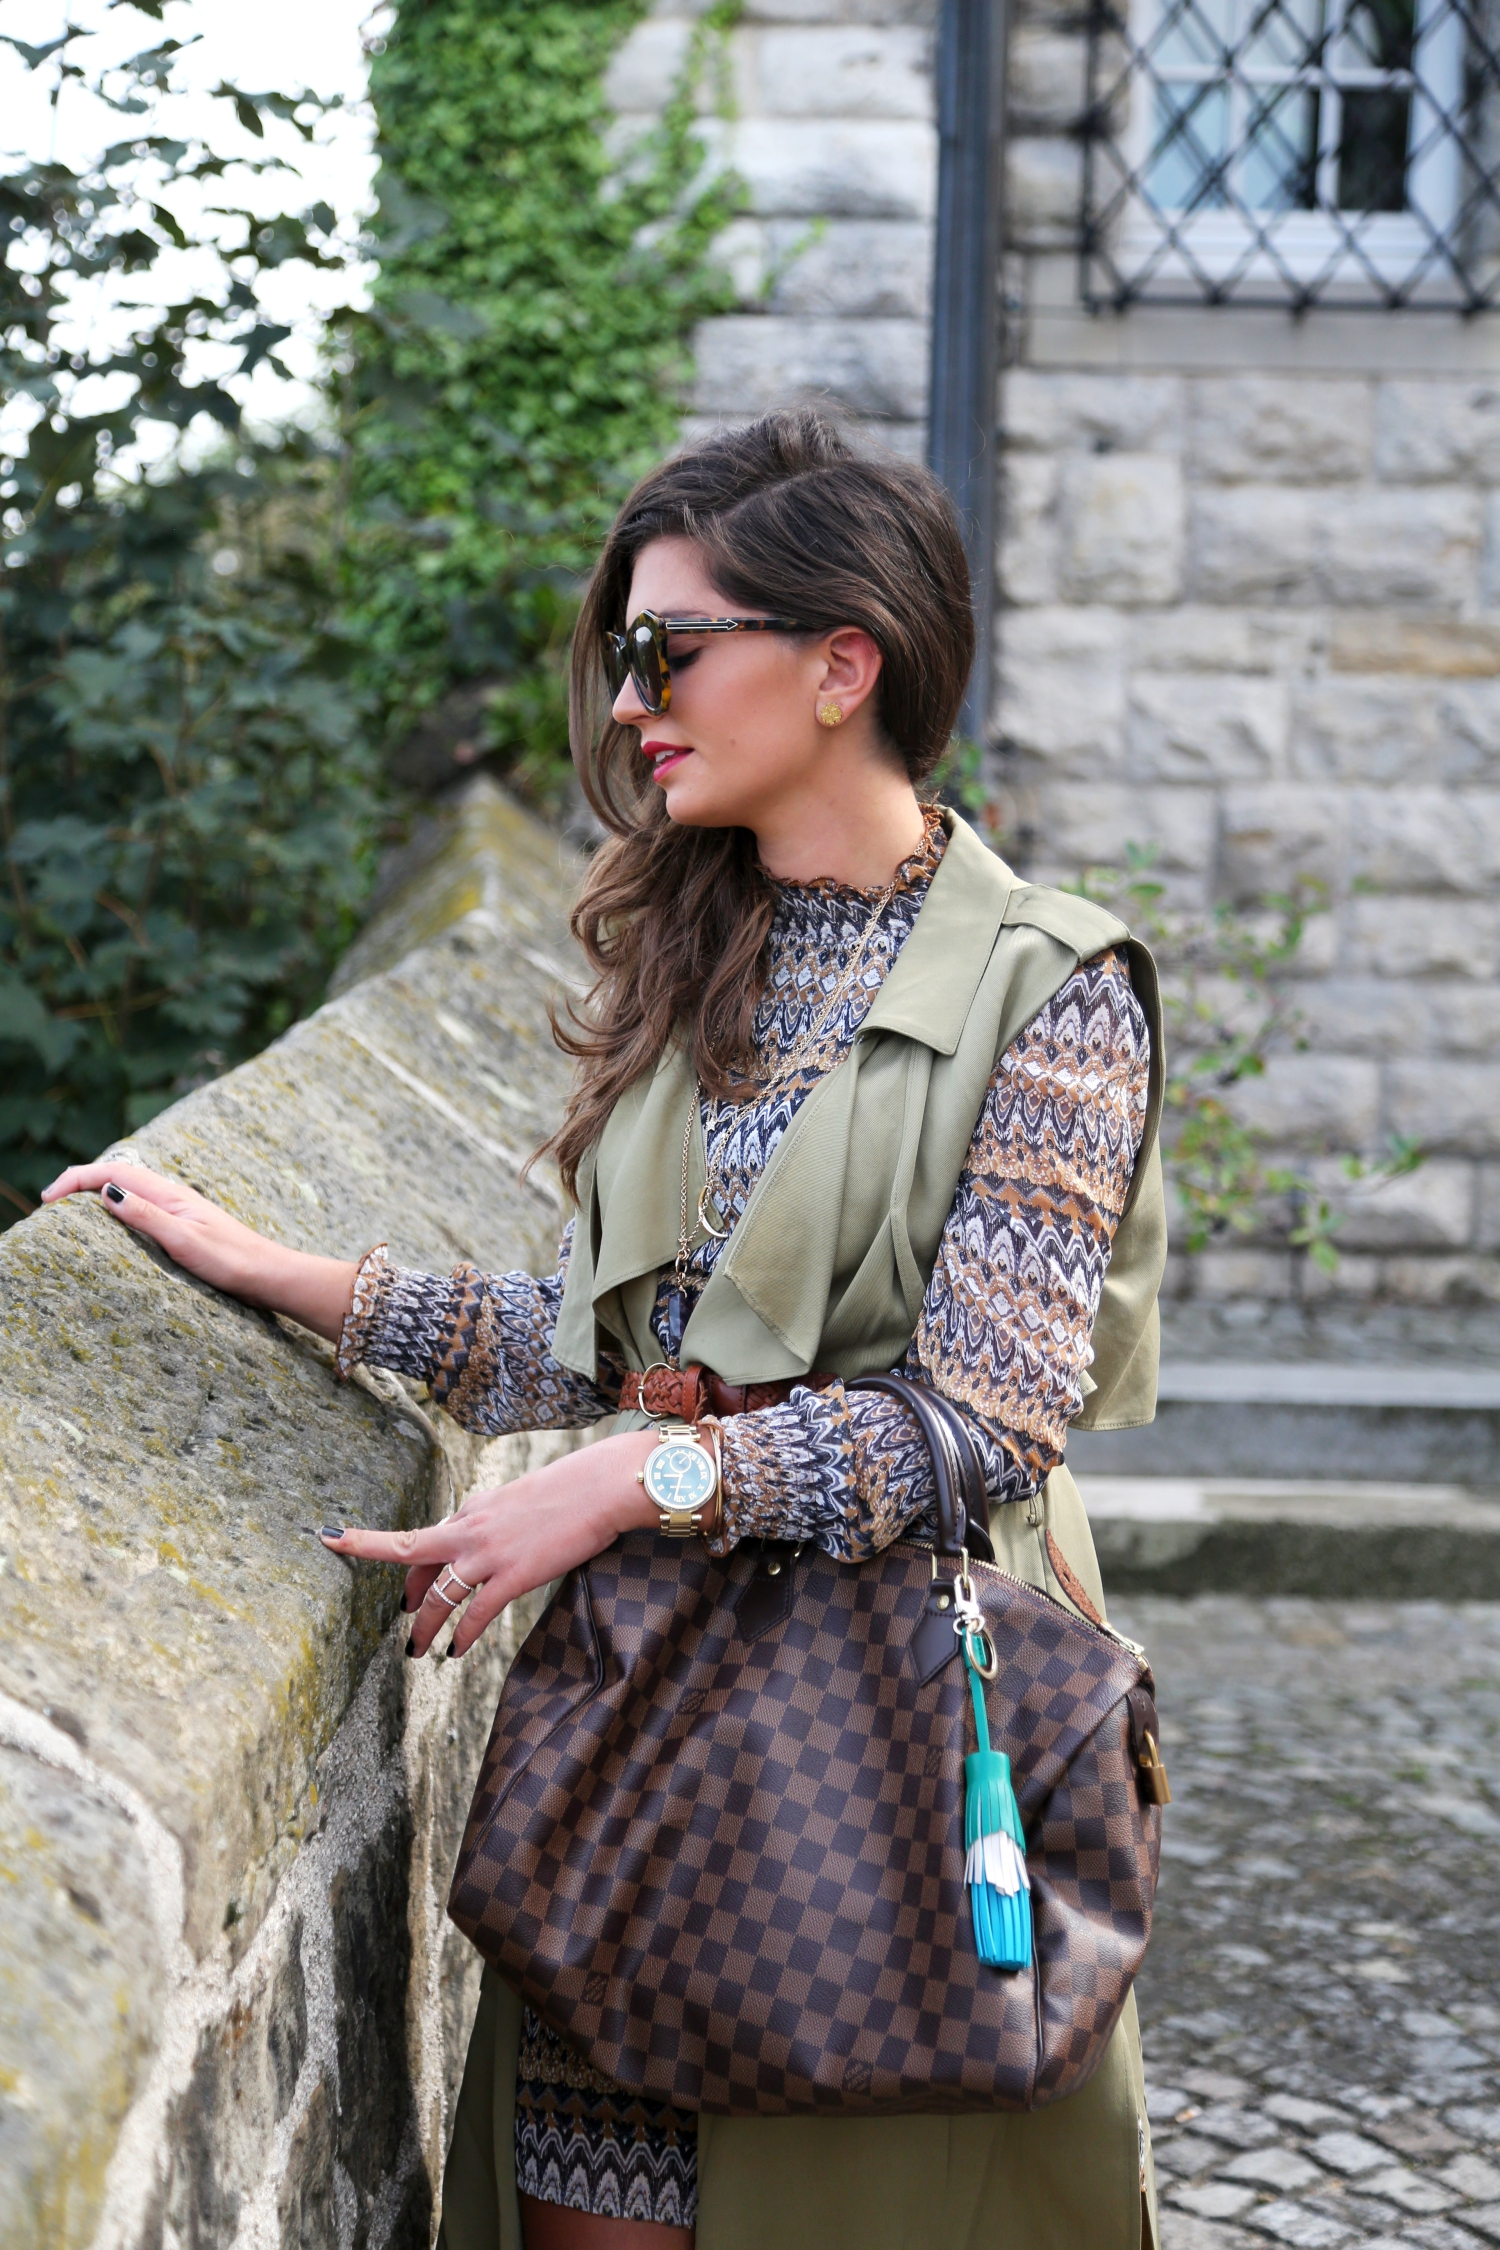 Edited-outfit-louis-vuitton-bag-karen-walker-sunglasses